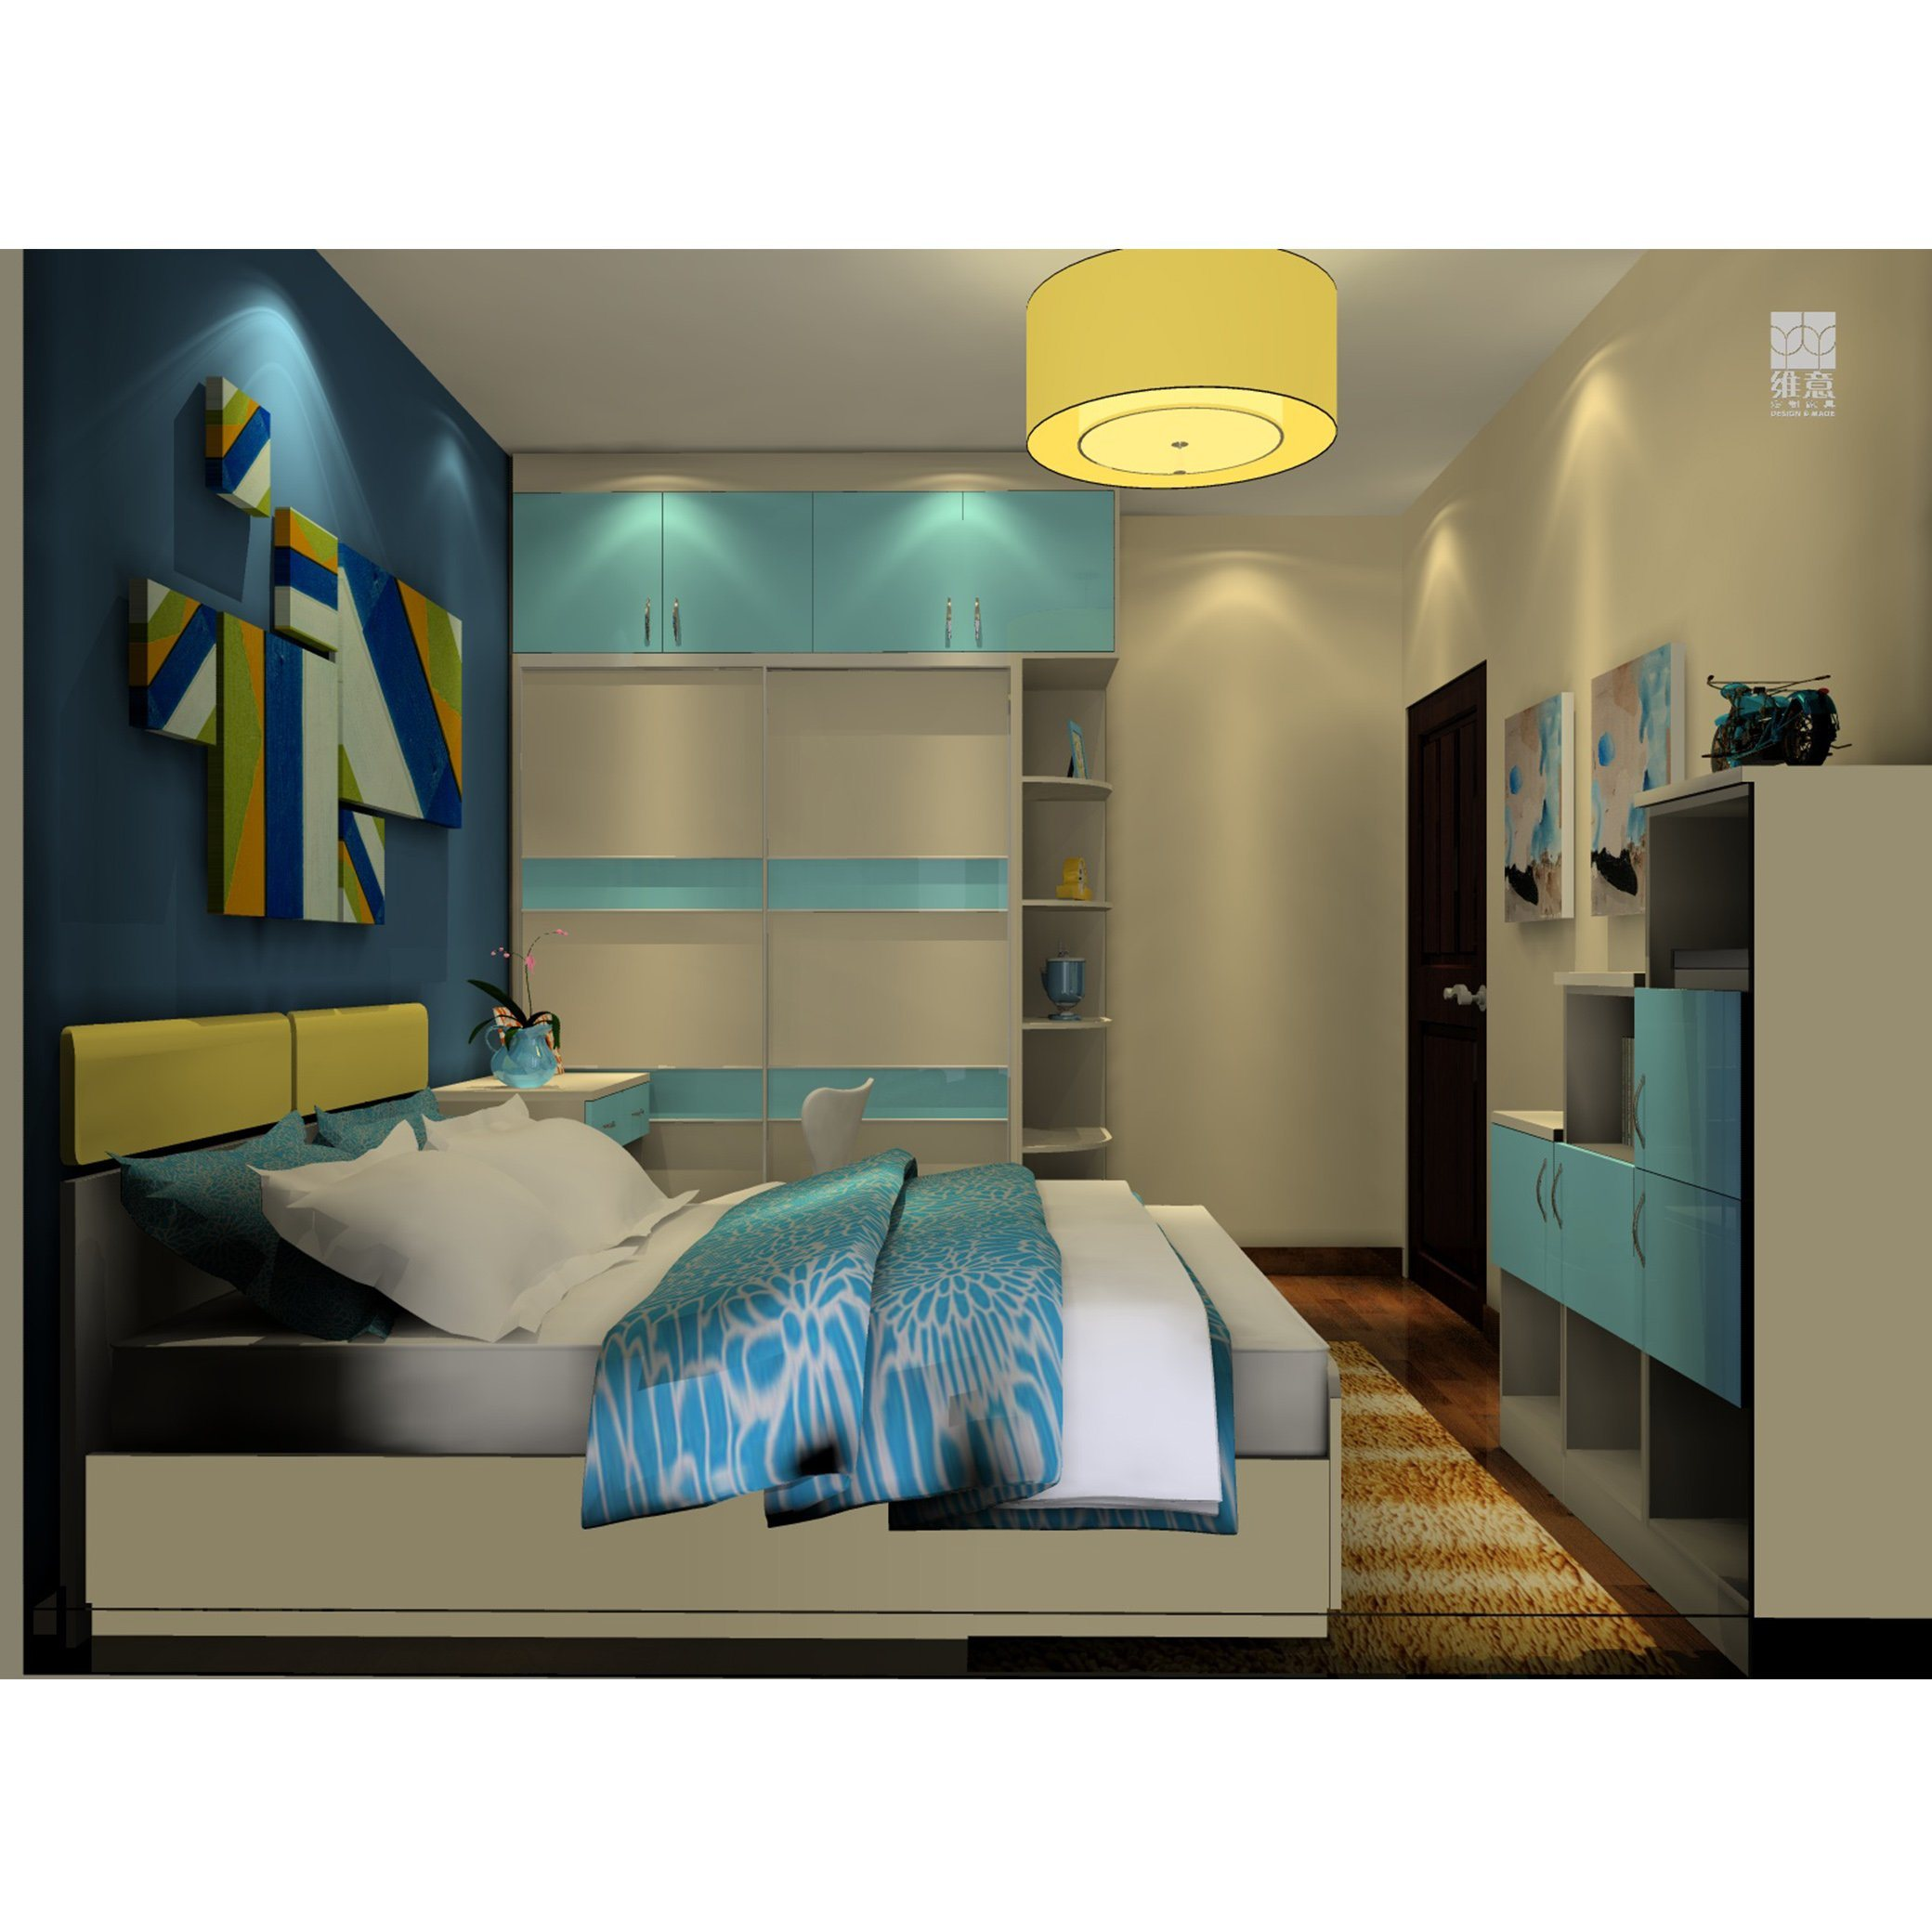 Home Design White and Blue Lacquer Partical Board Sliding Wardrobe